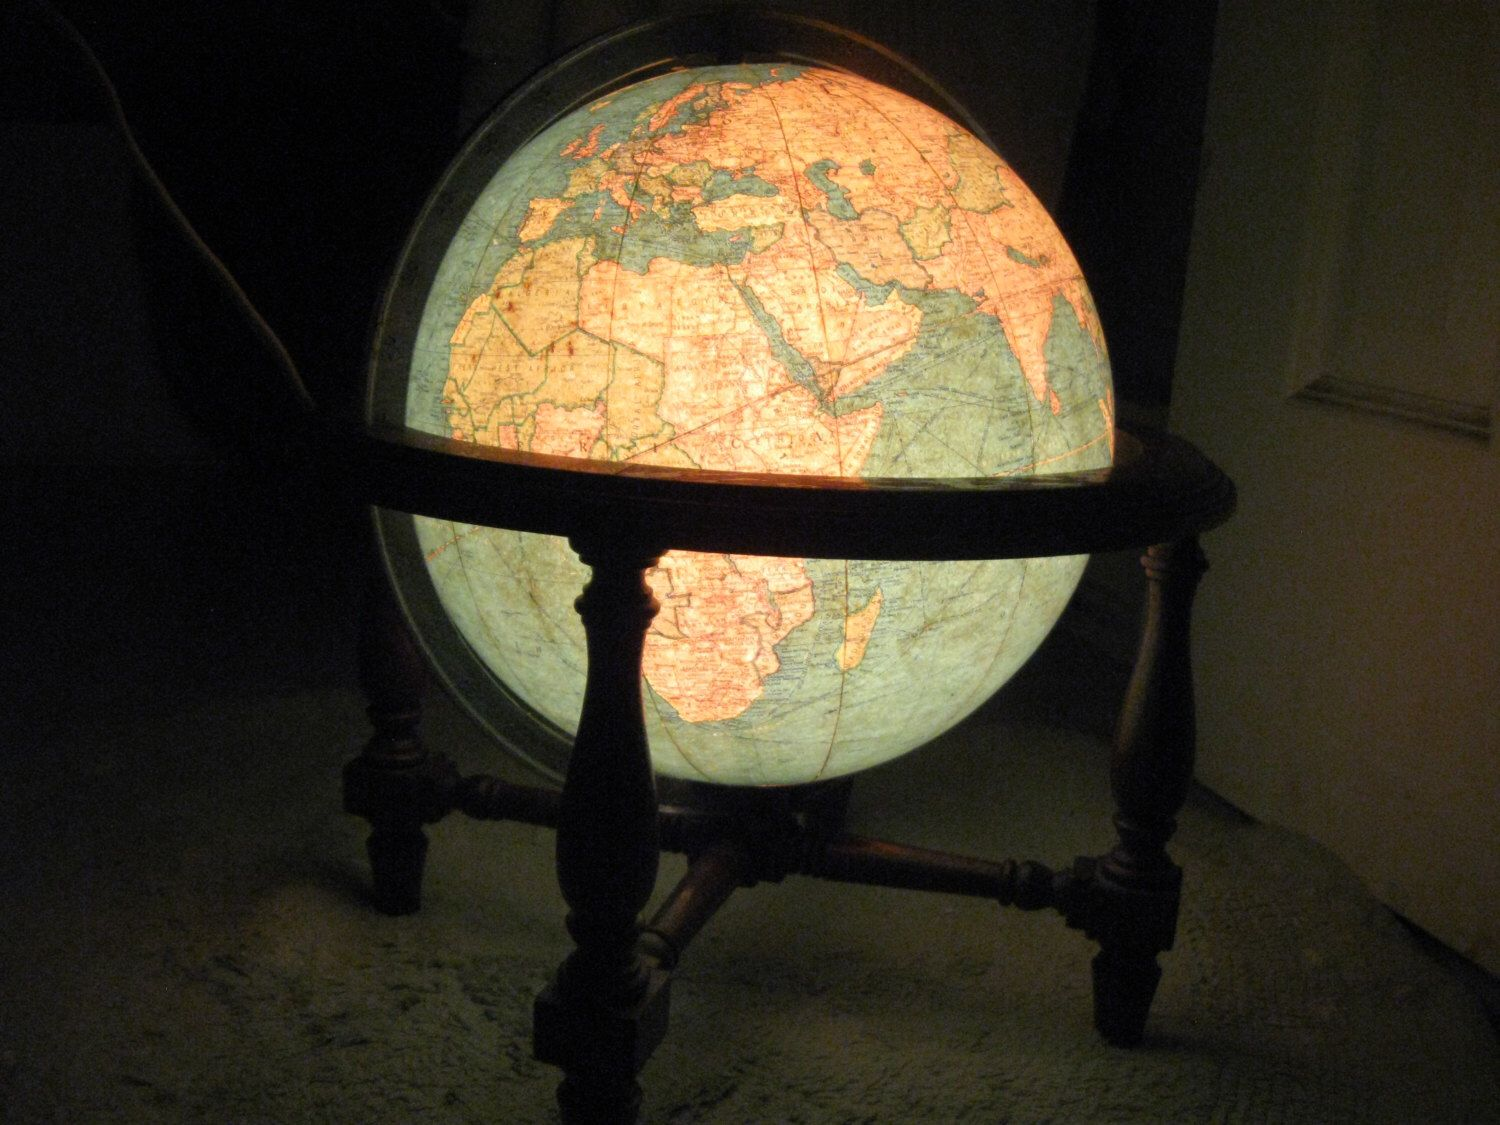 Vintage metal library globe 10 with wood stand electric globe vintage metal library globe 10 with wood stand electric globe replogle globes inc chicago usa world map gumiabroncs Image collections